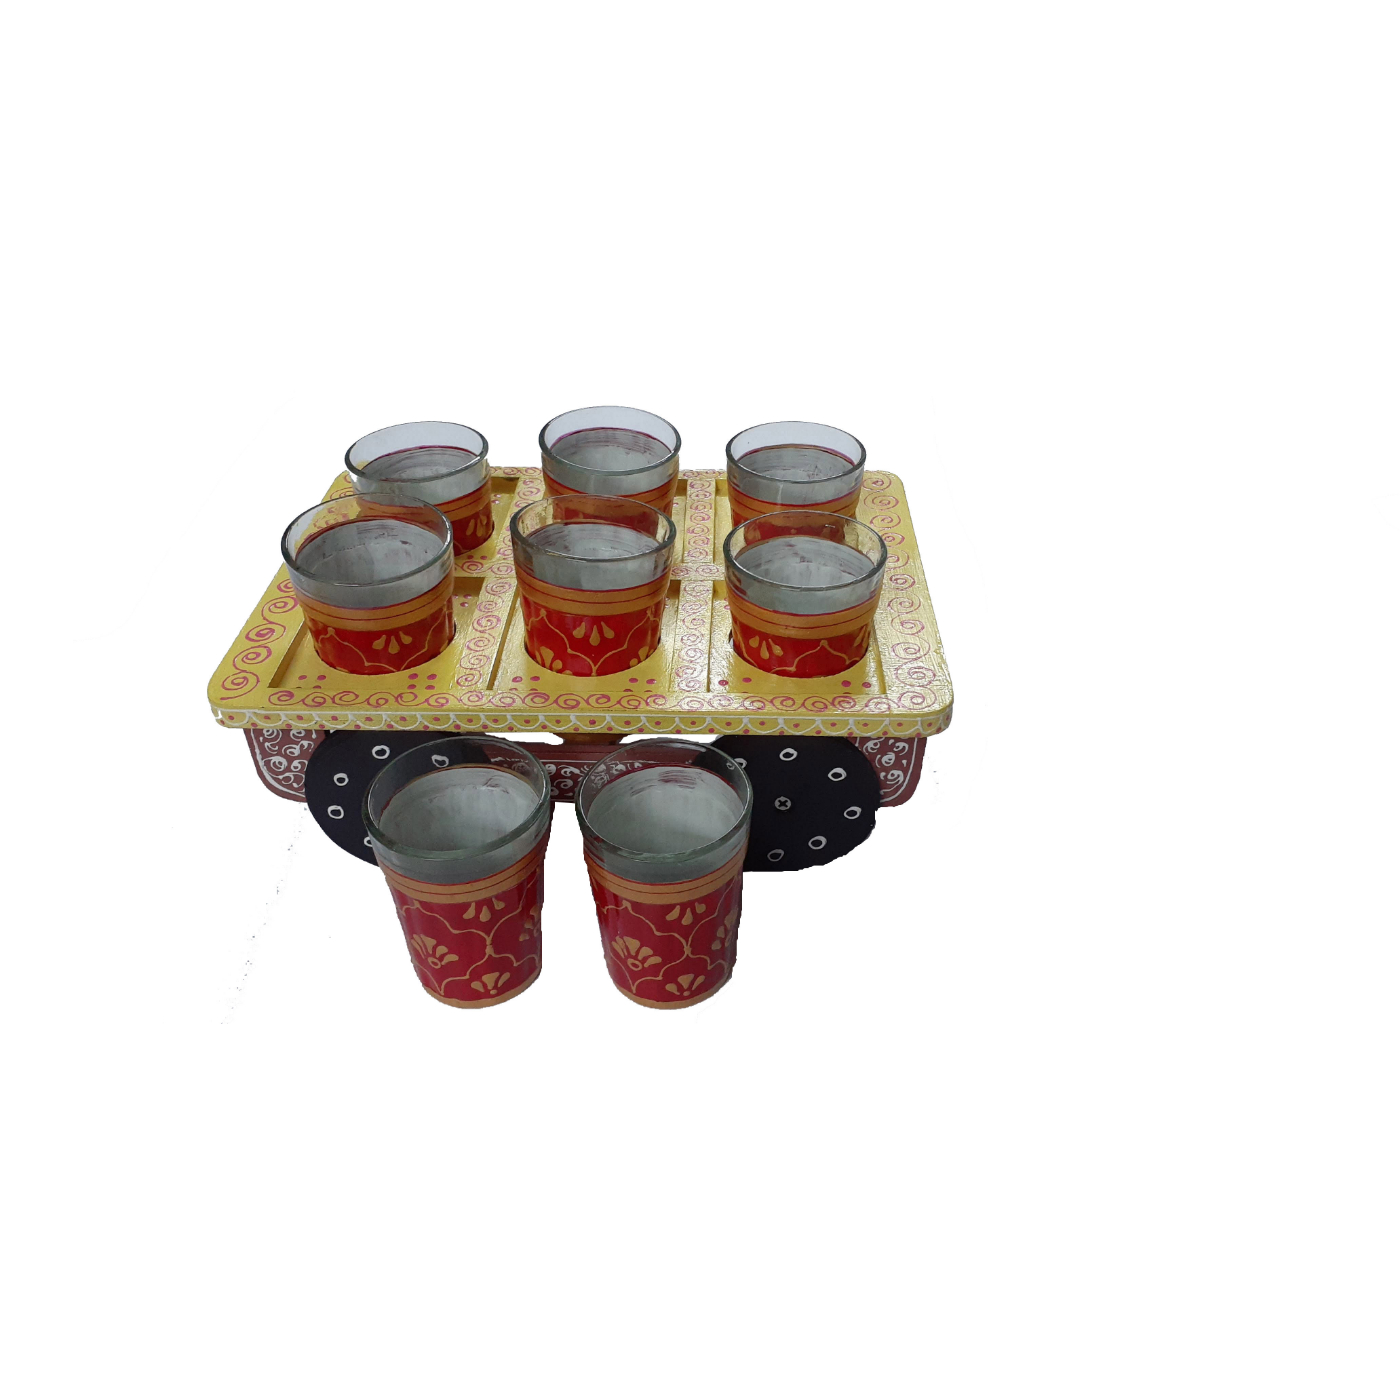 Multicolor Hand painted Aluminium Tea Kettle Set With 8 Glasses and Wooden dry fruits box., 5 image